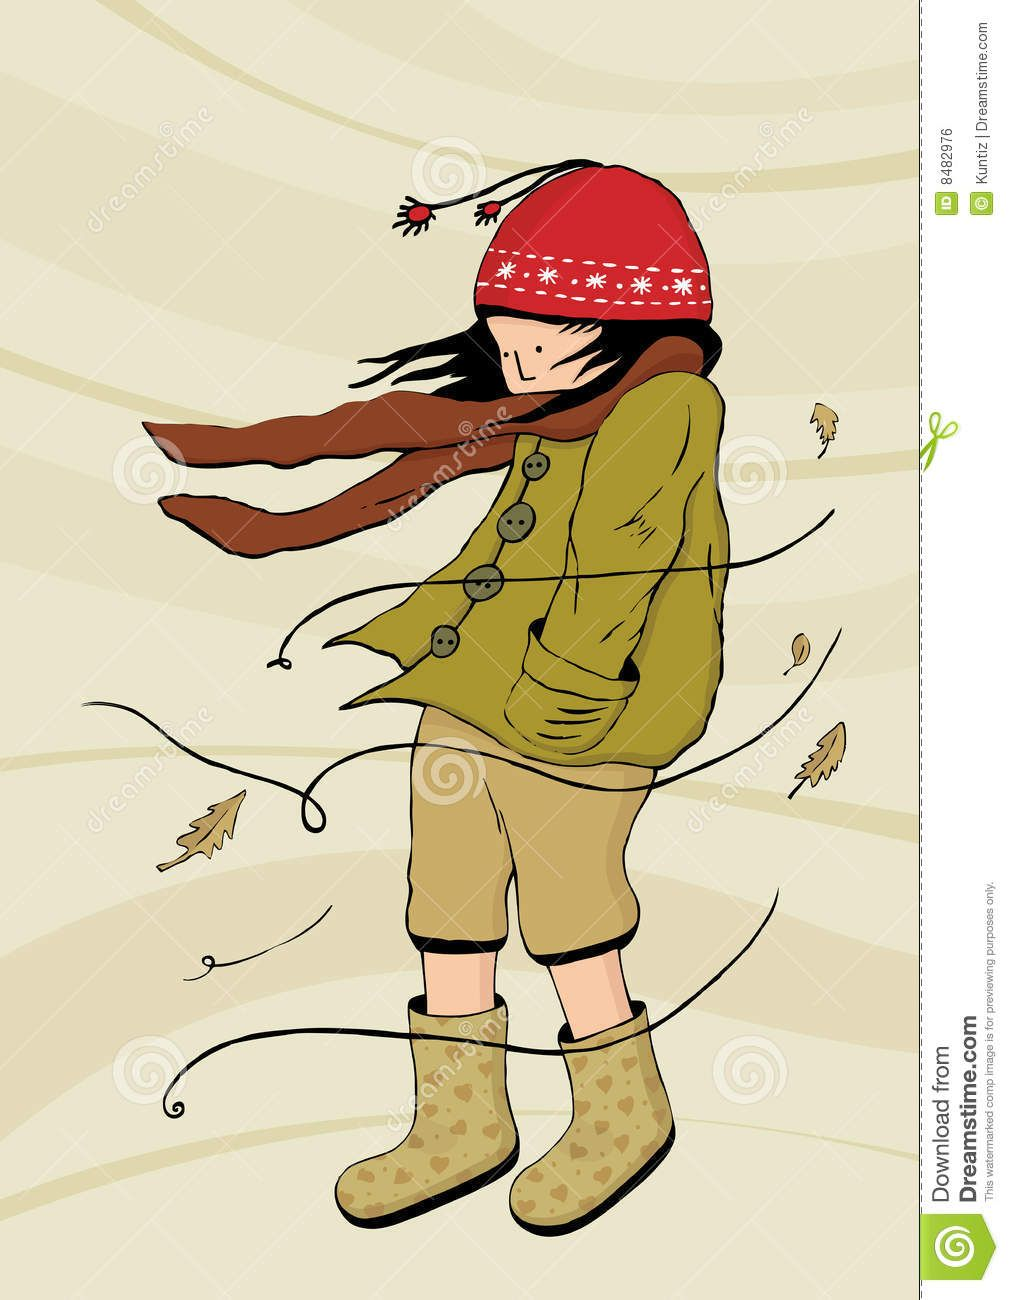 Windy clipart wet. Fall weather google search